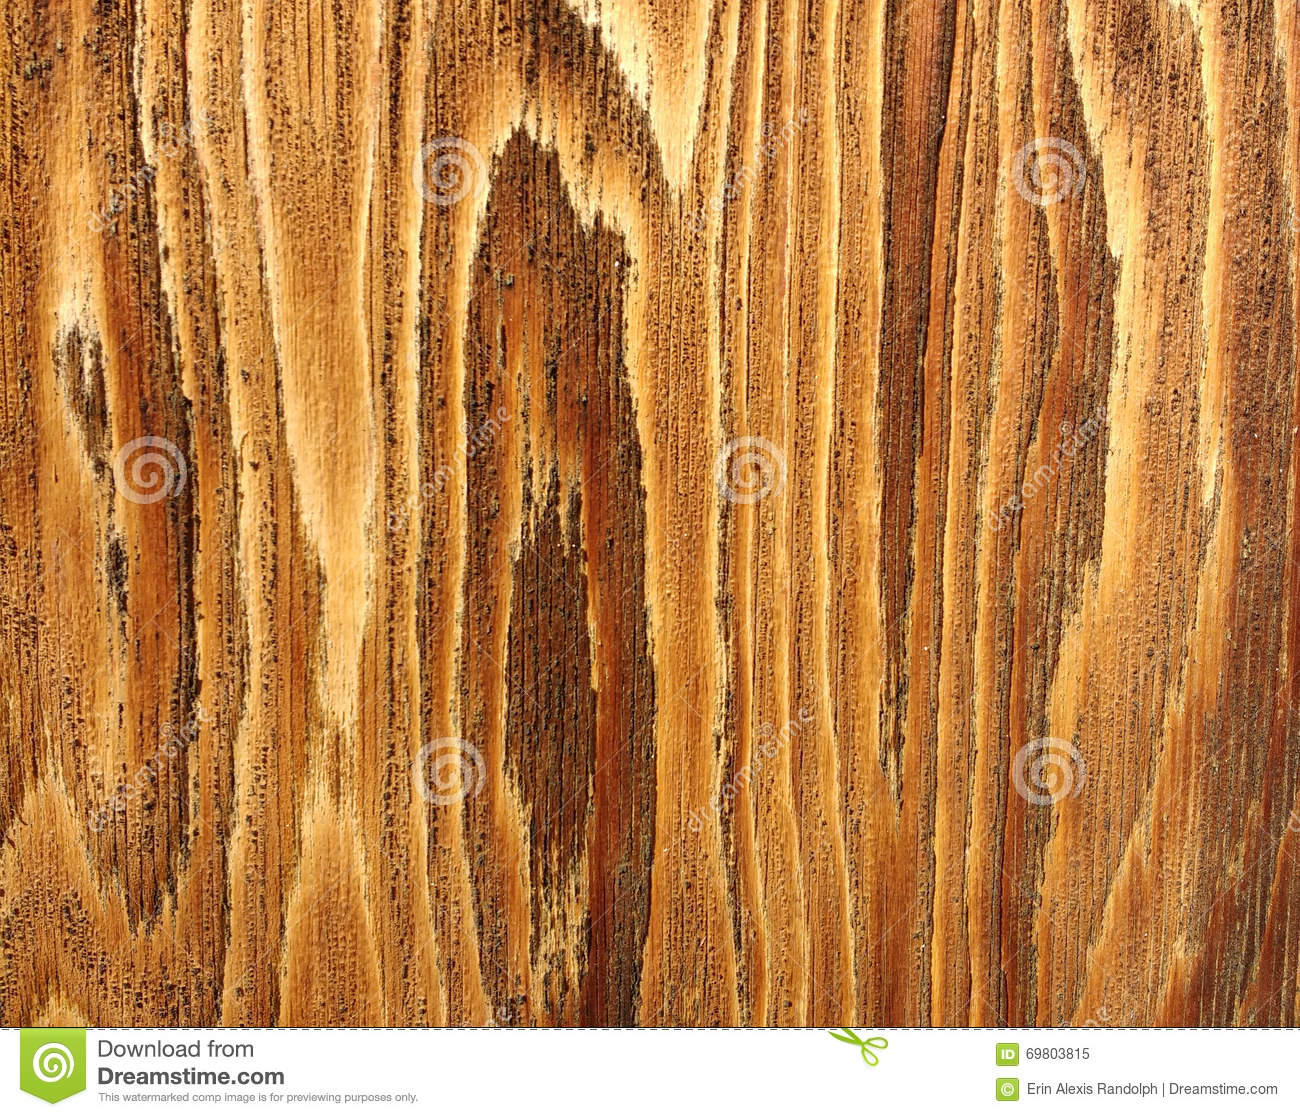 Beautiful Detail Of Wood Grain Stock Photo Image 69803815